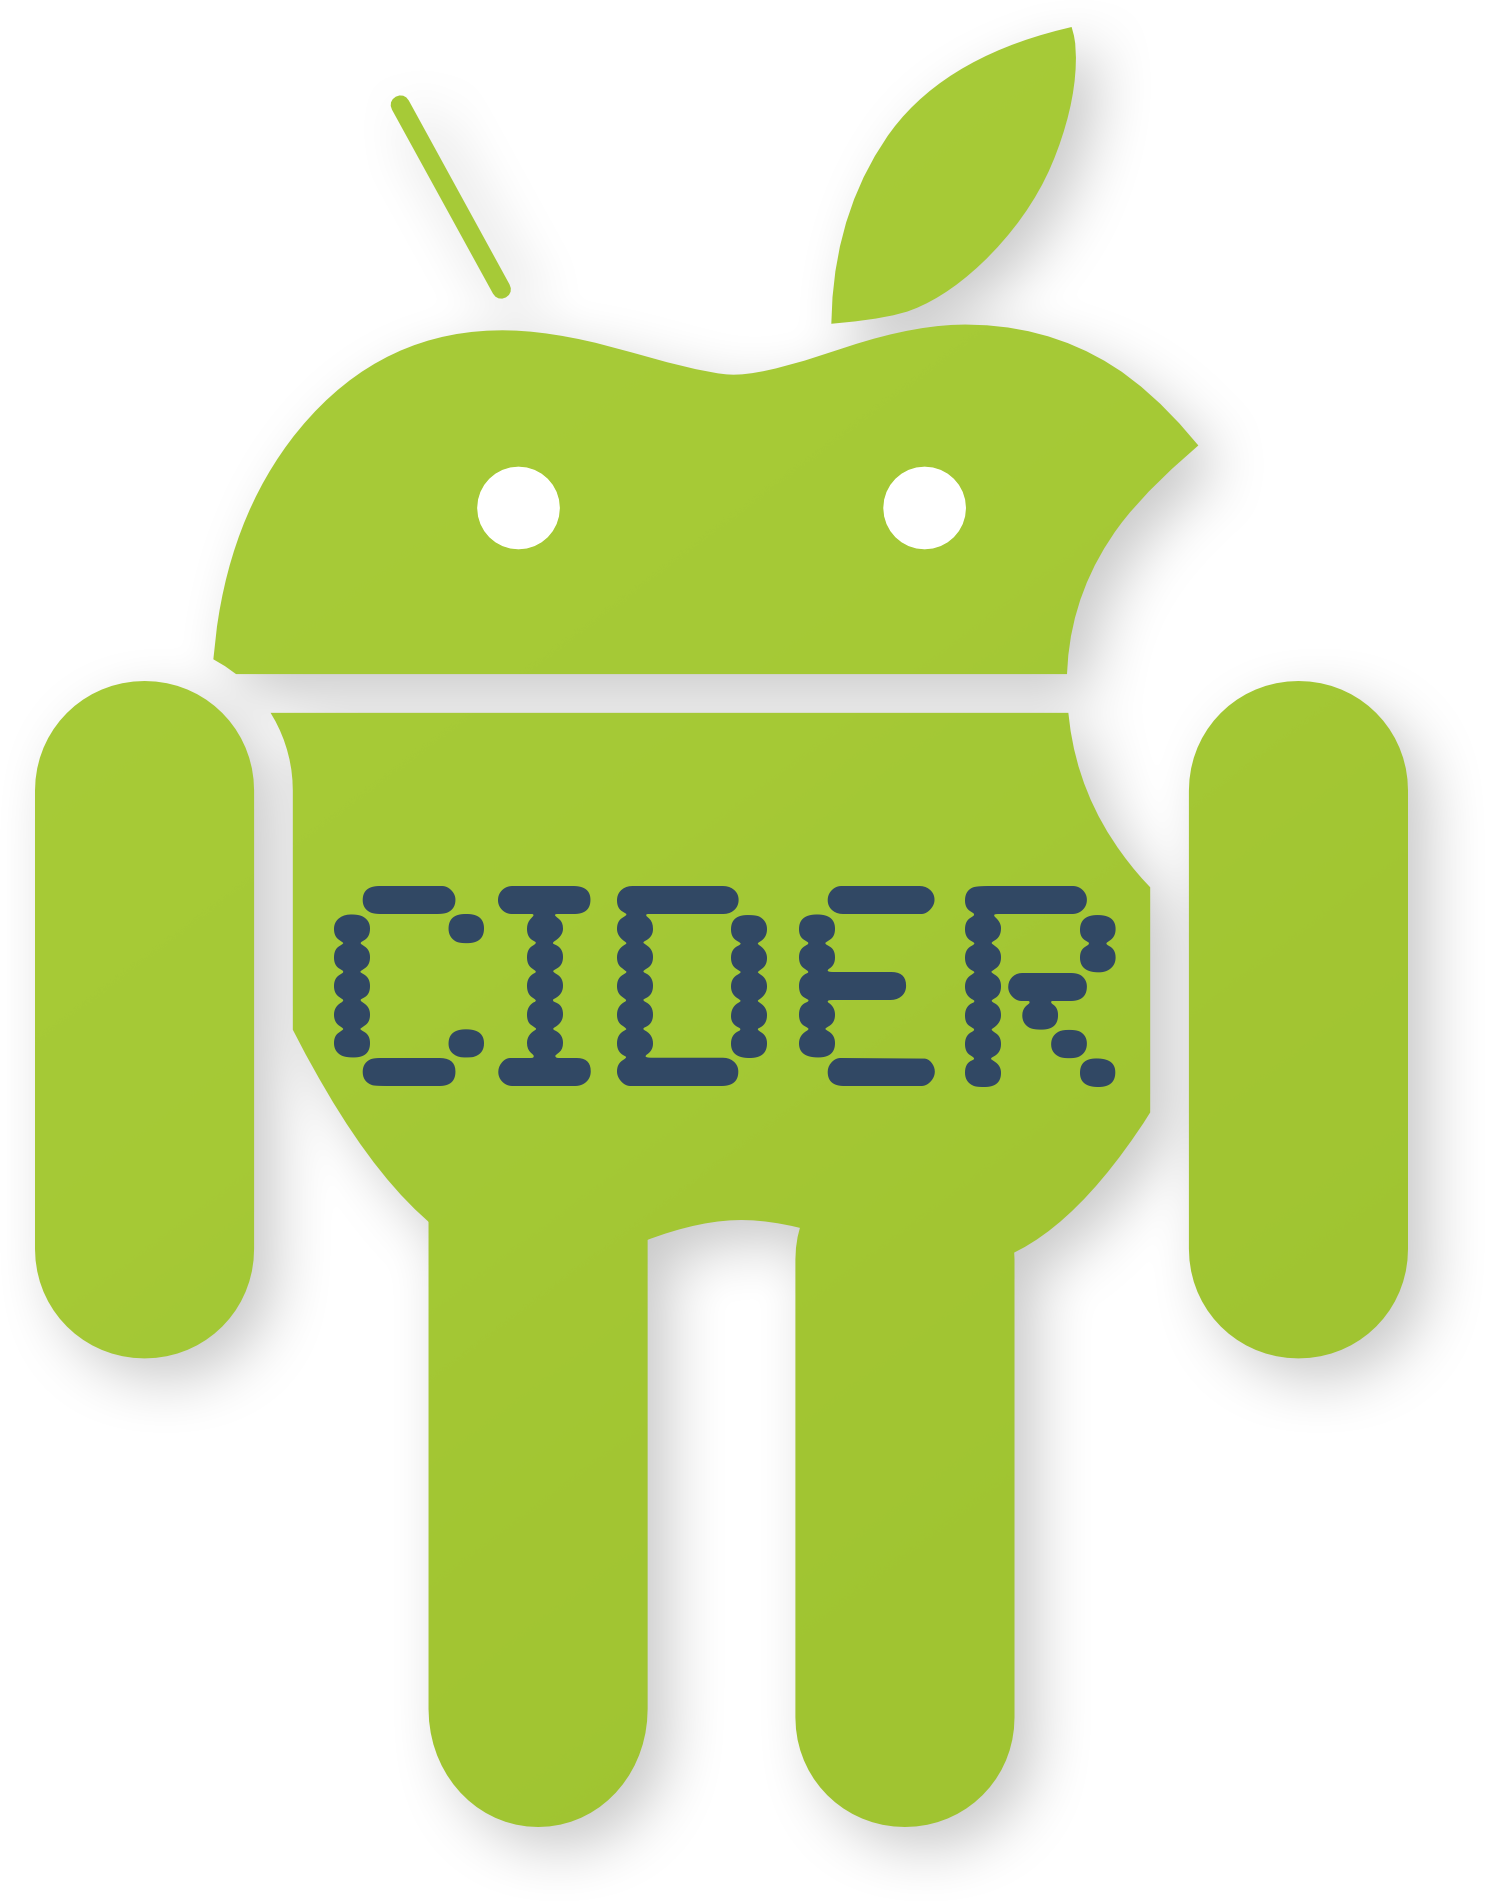 Cider - apps de iOS no Android